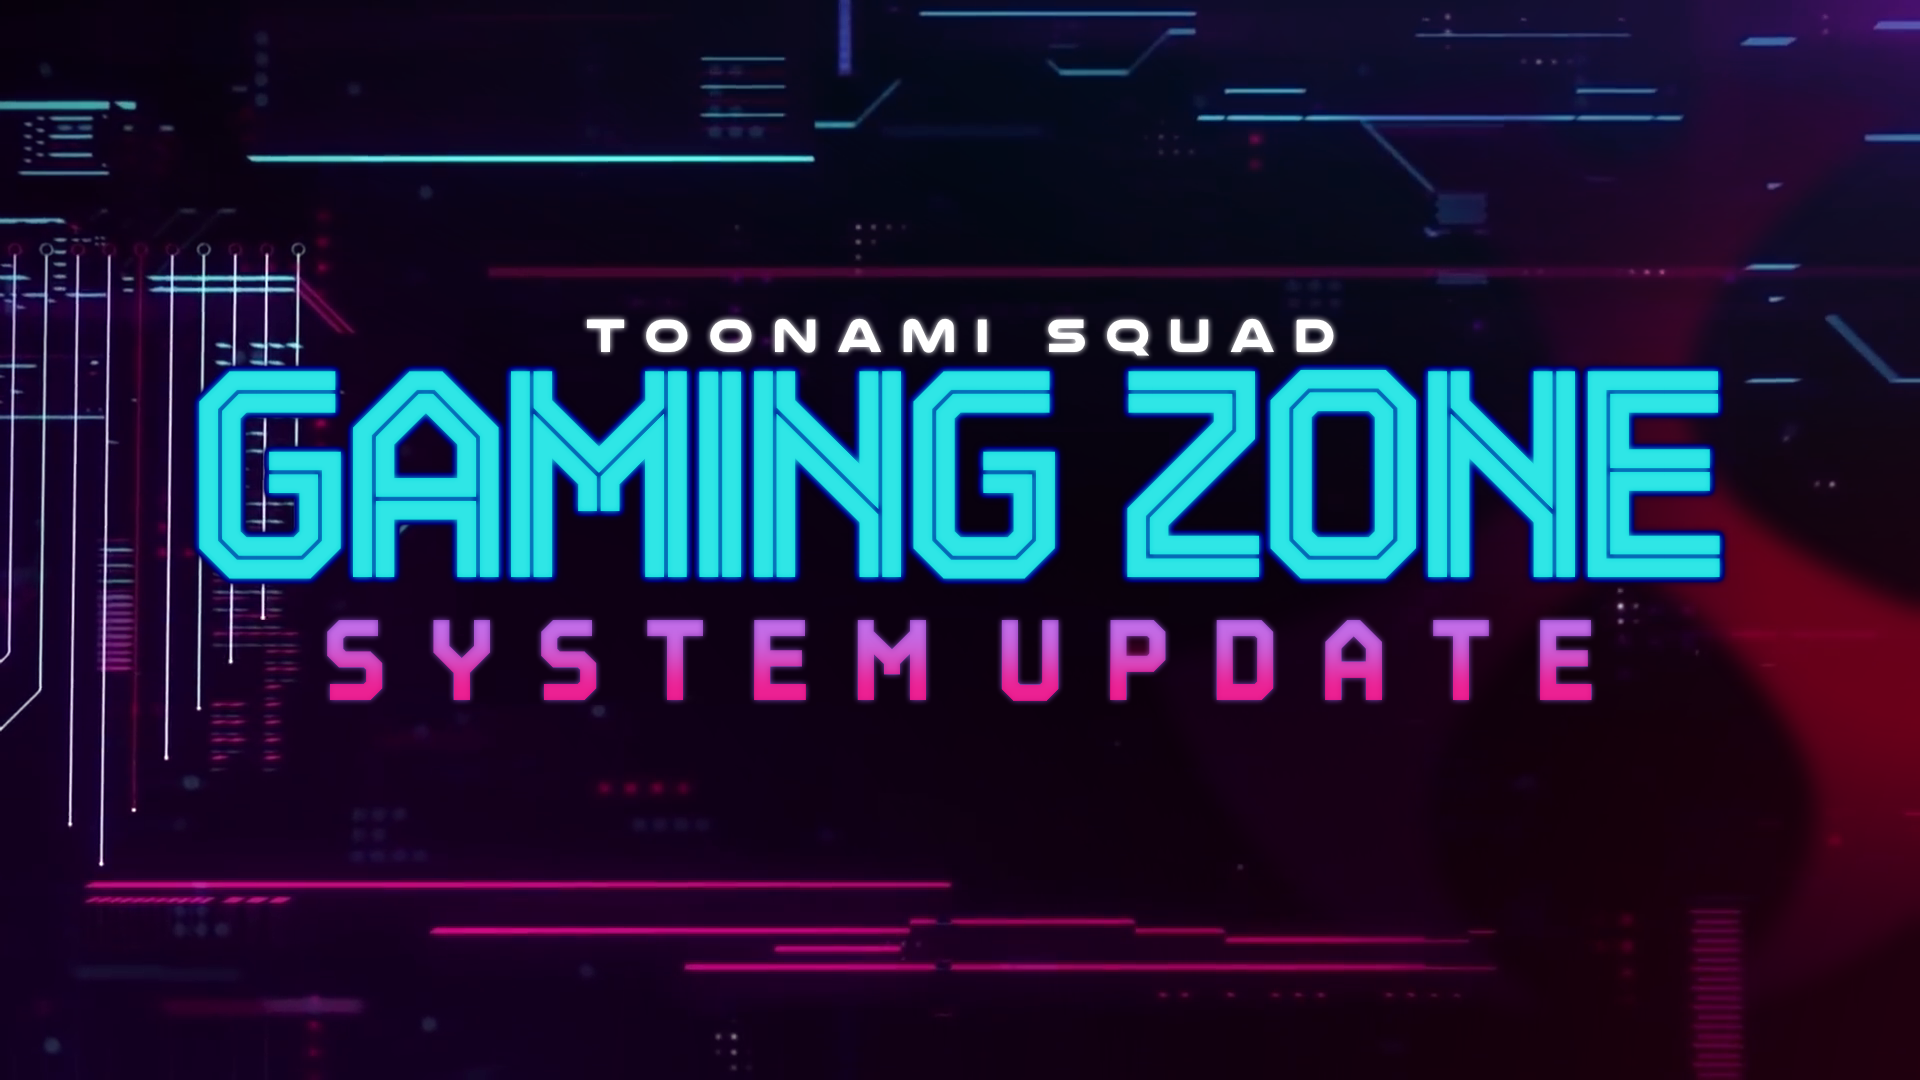 Toonami Squad Gaming Zone System Update 2/23